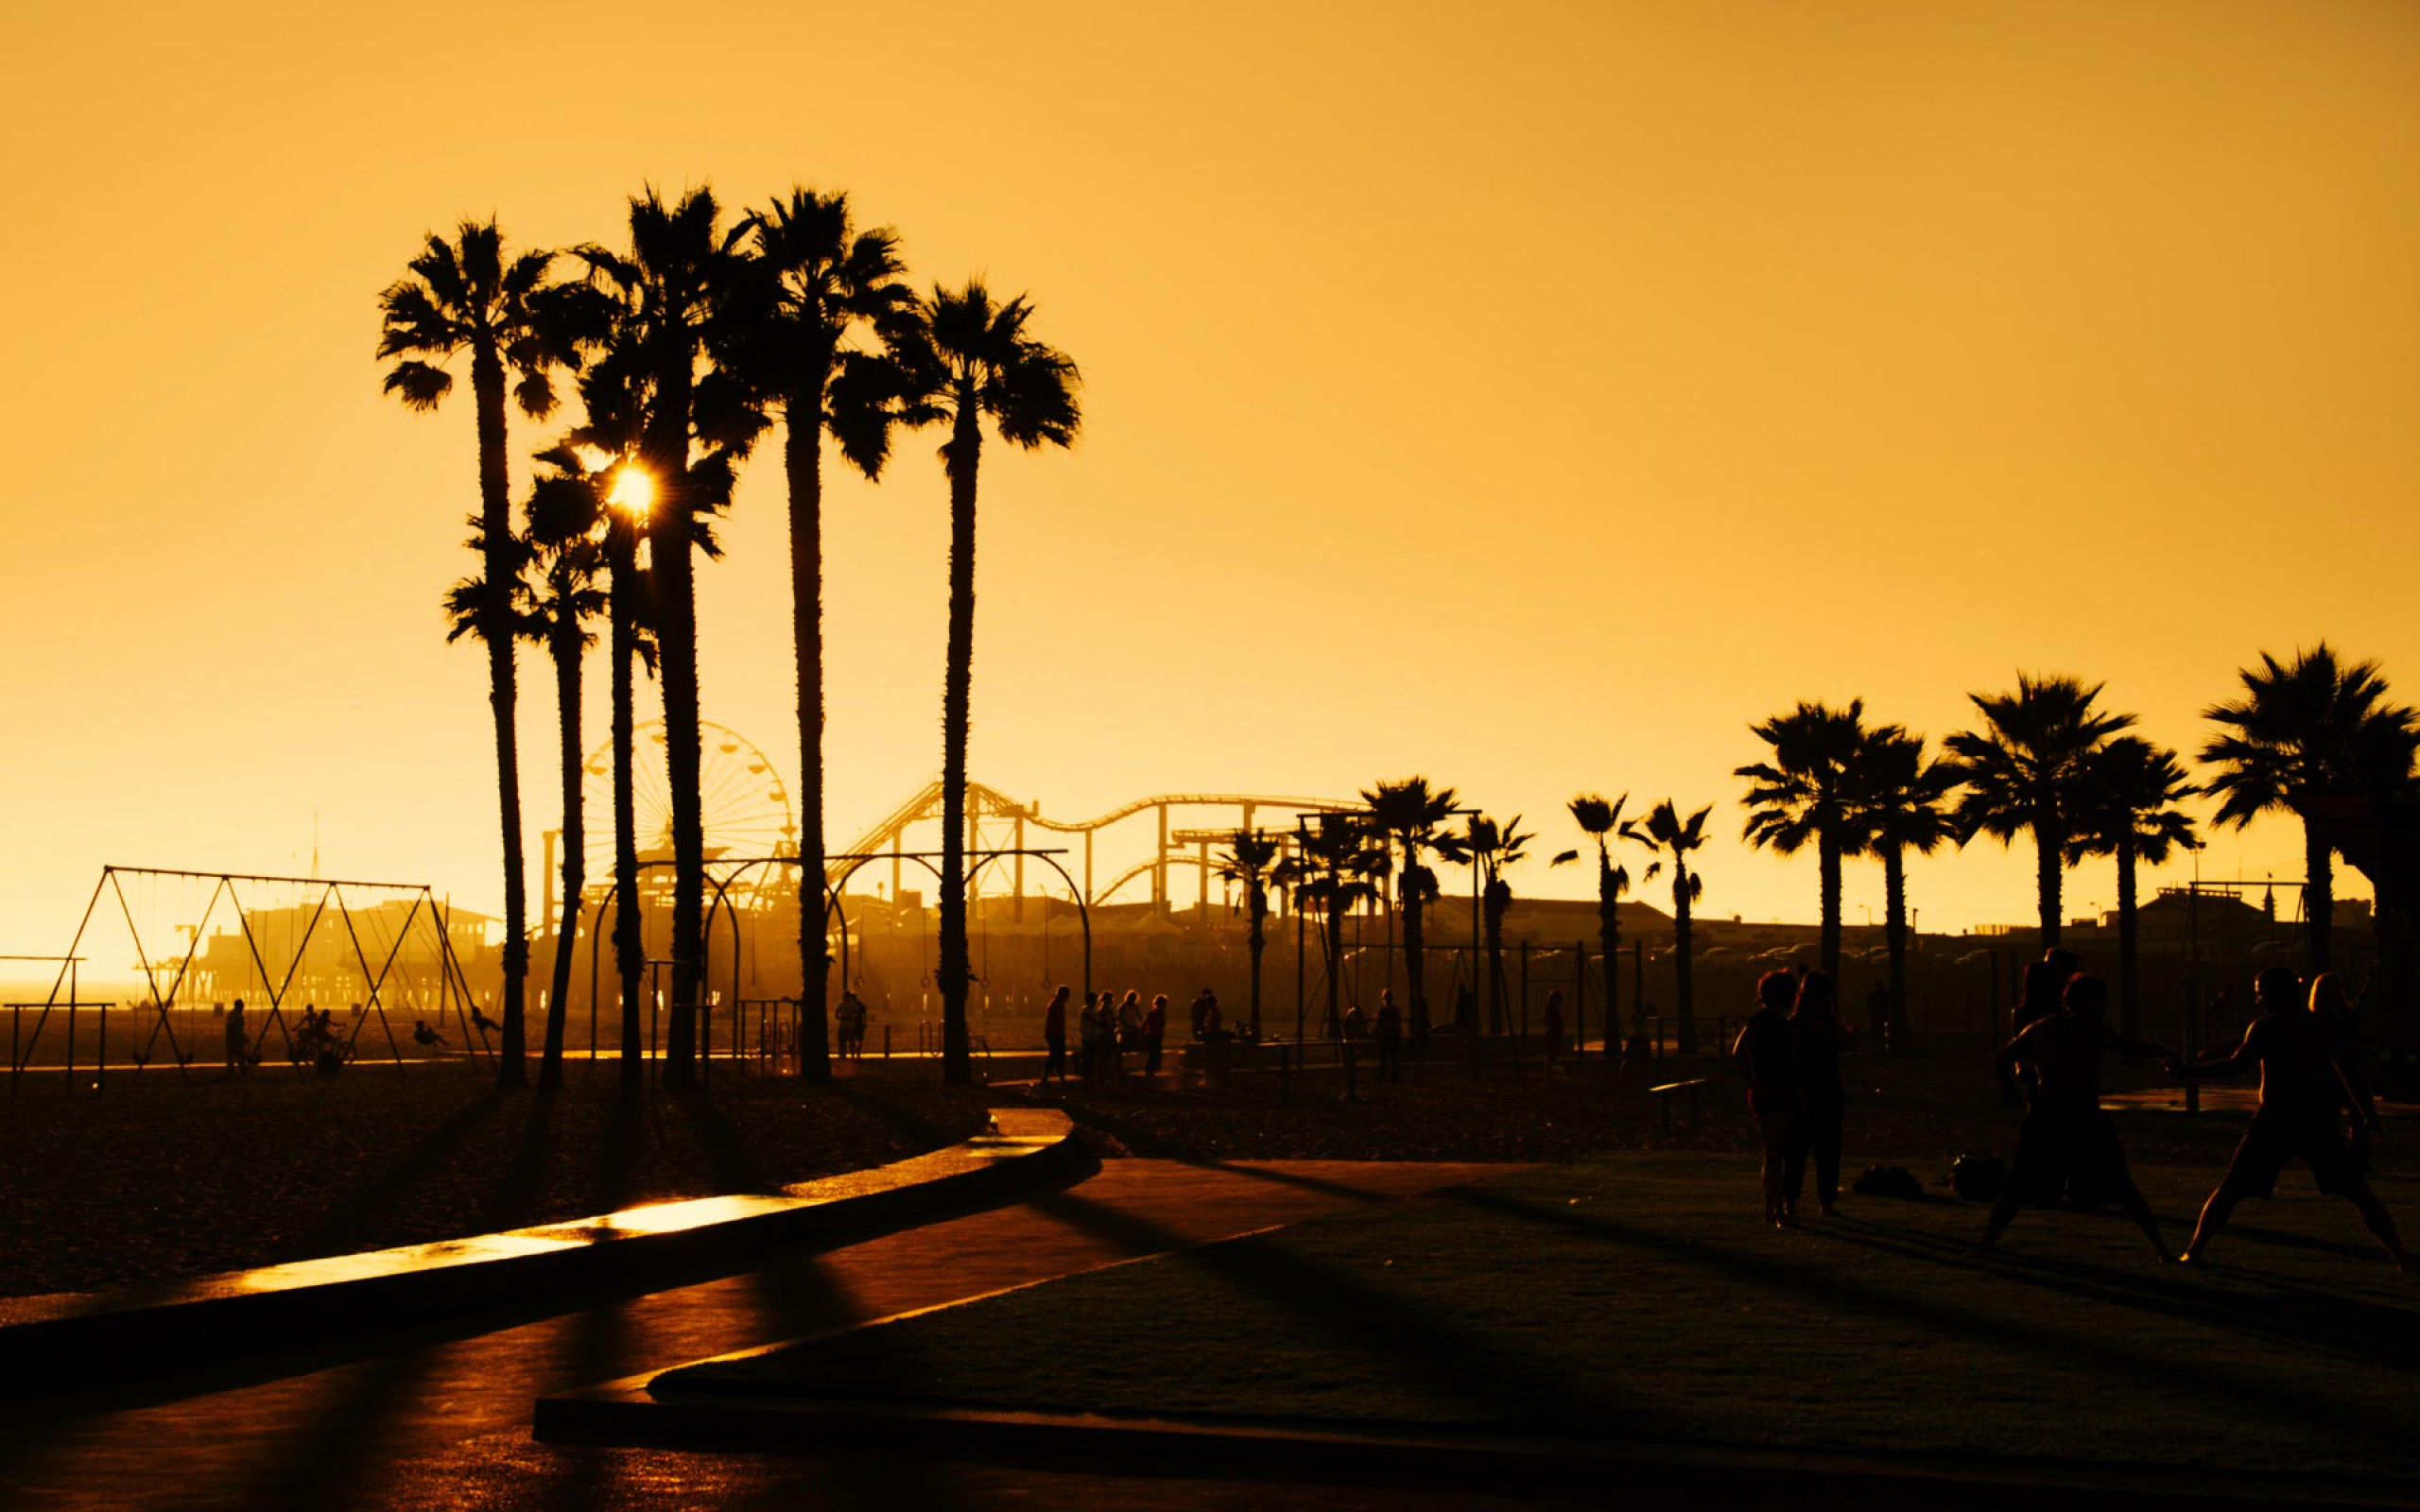 Santa Monica California Beach Sunset Wallpaper in High Resolution at 2560x1600